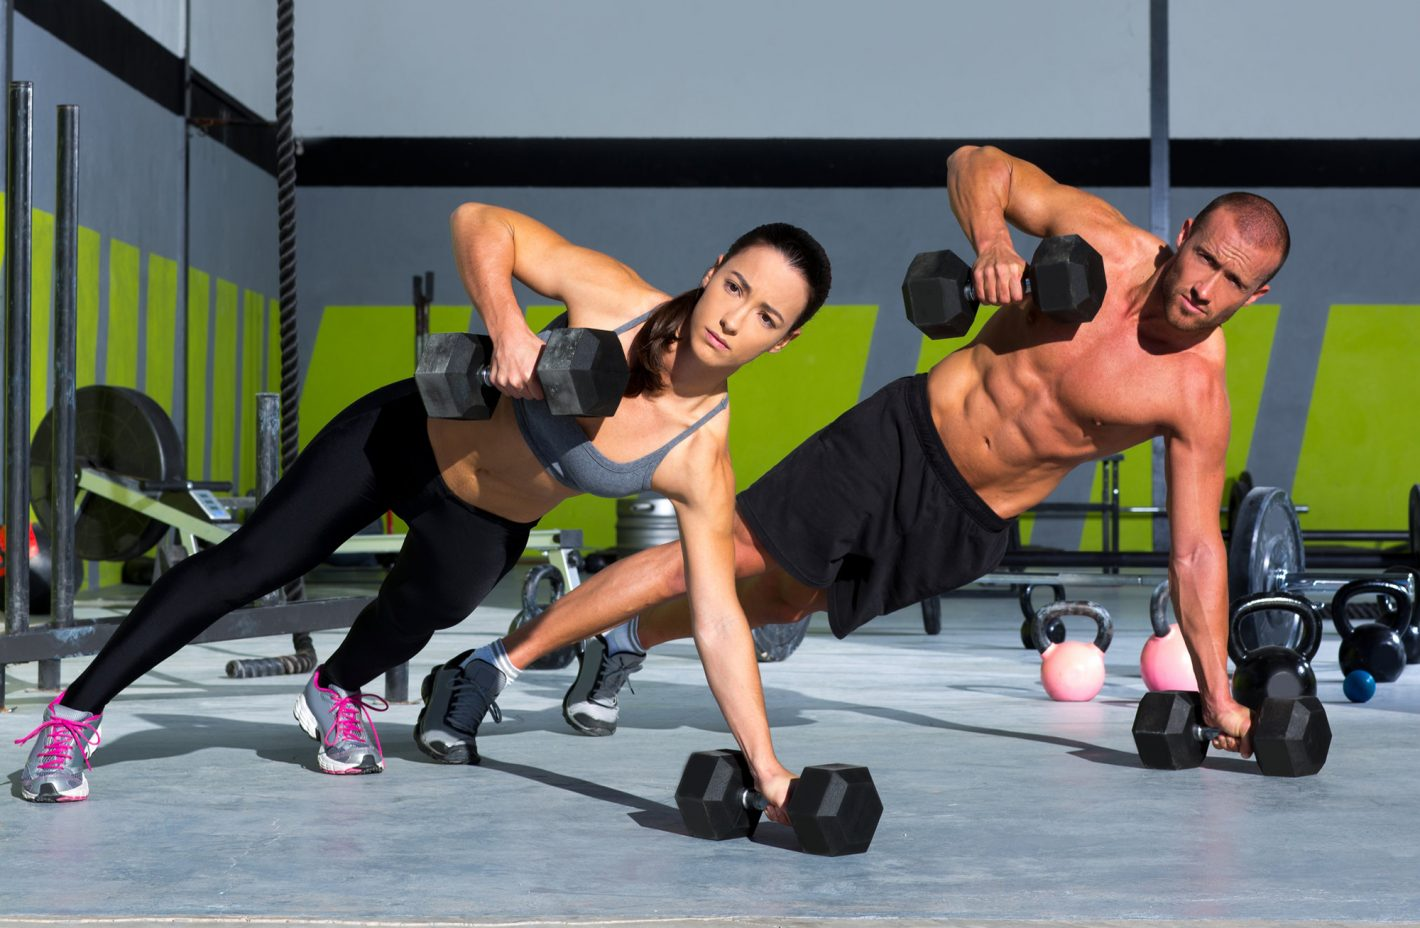 Total Health & Fitness Expo Comes to Cal Expo